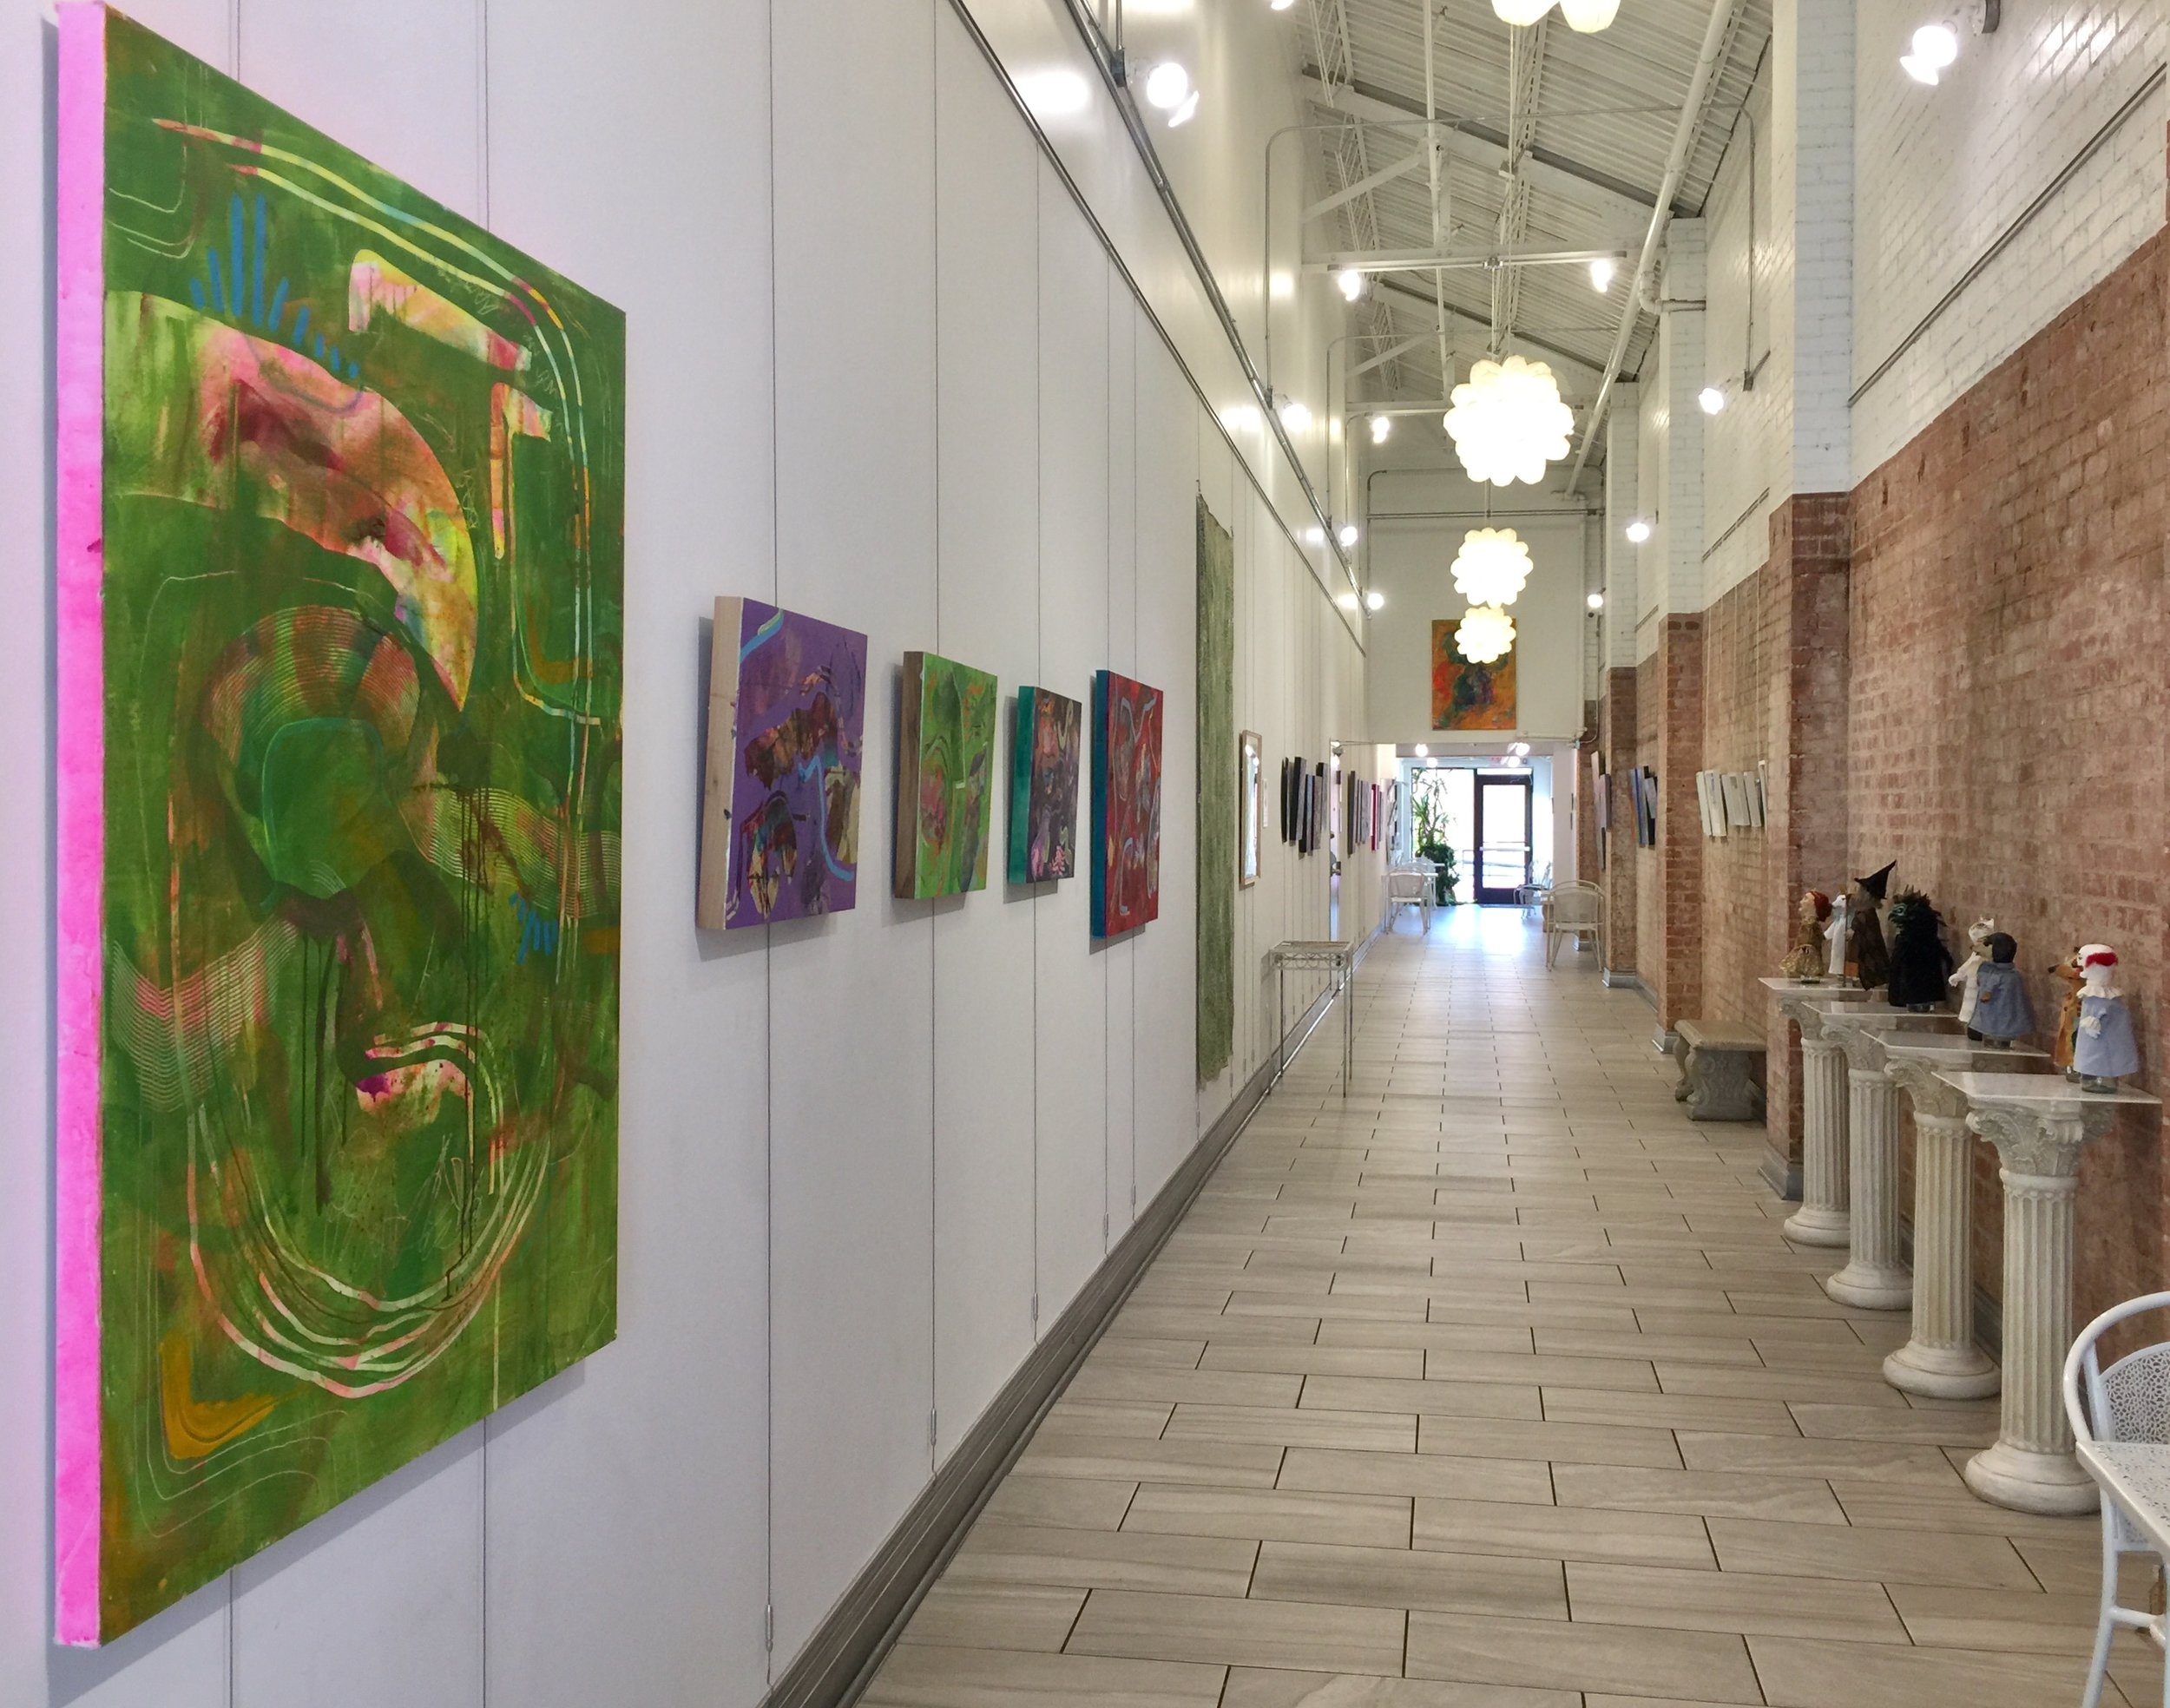 Installation view facing North, featuring Virginia Sitzes on the left